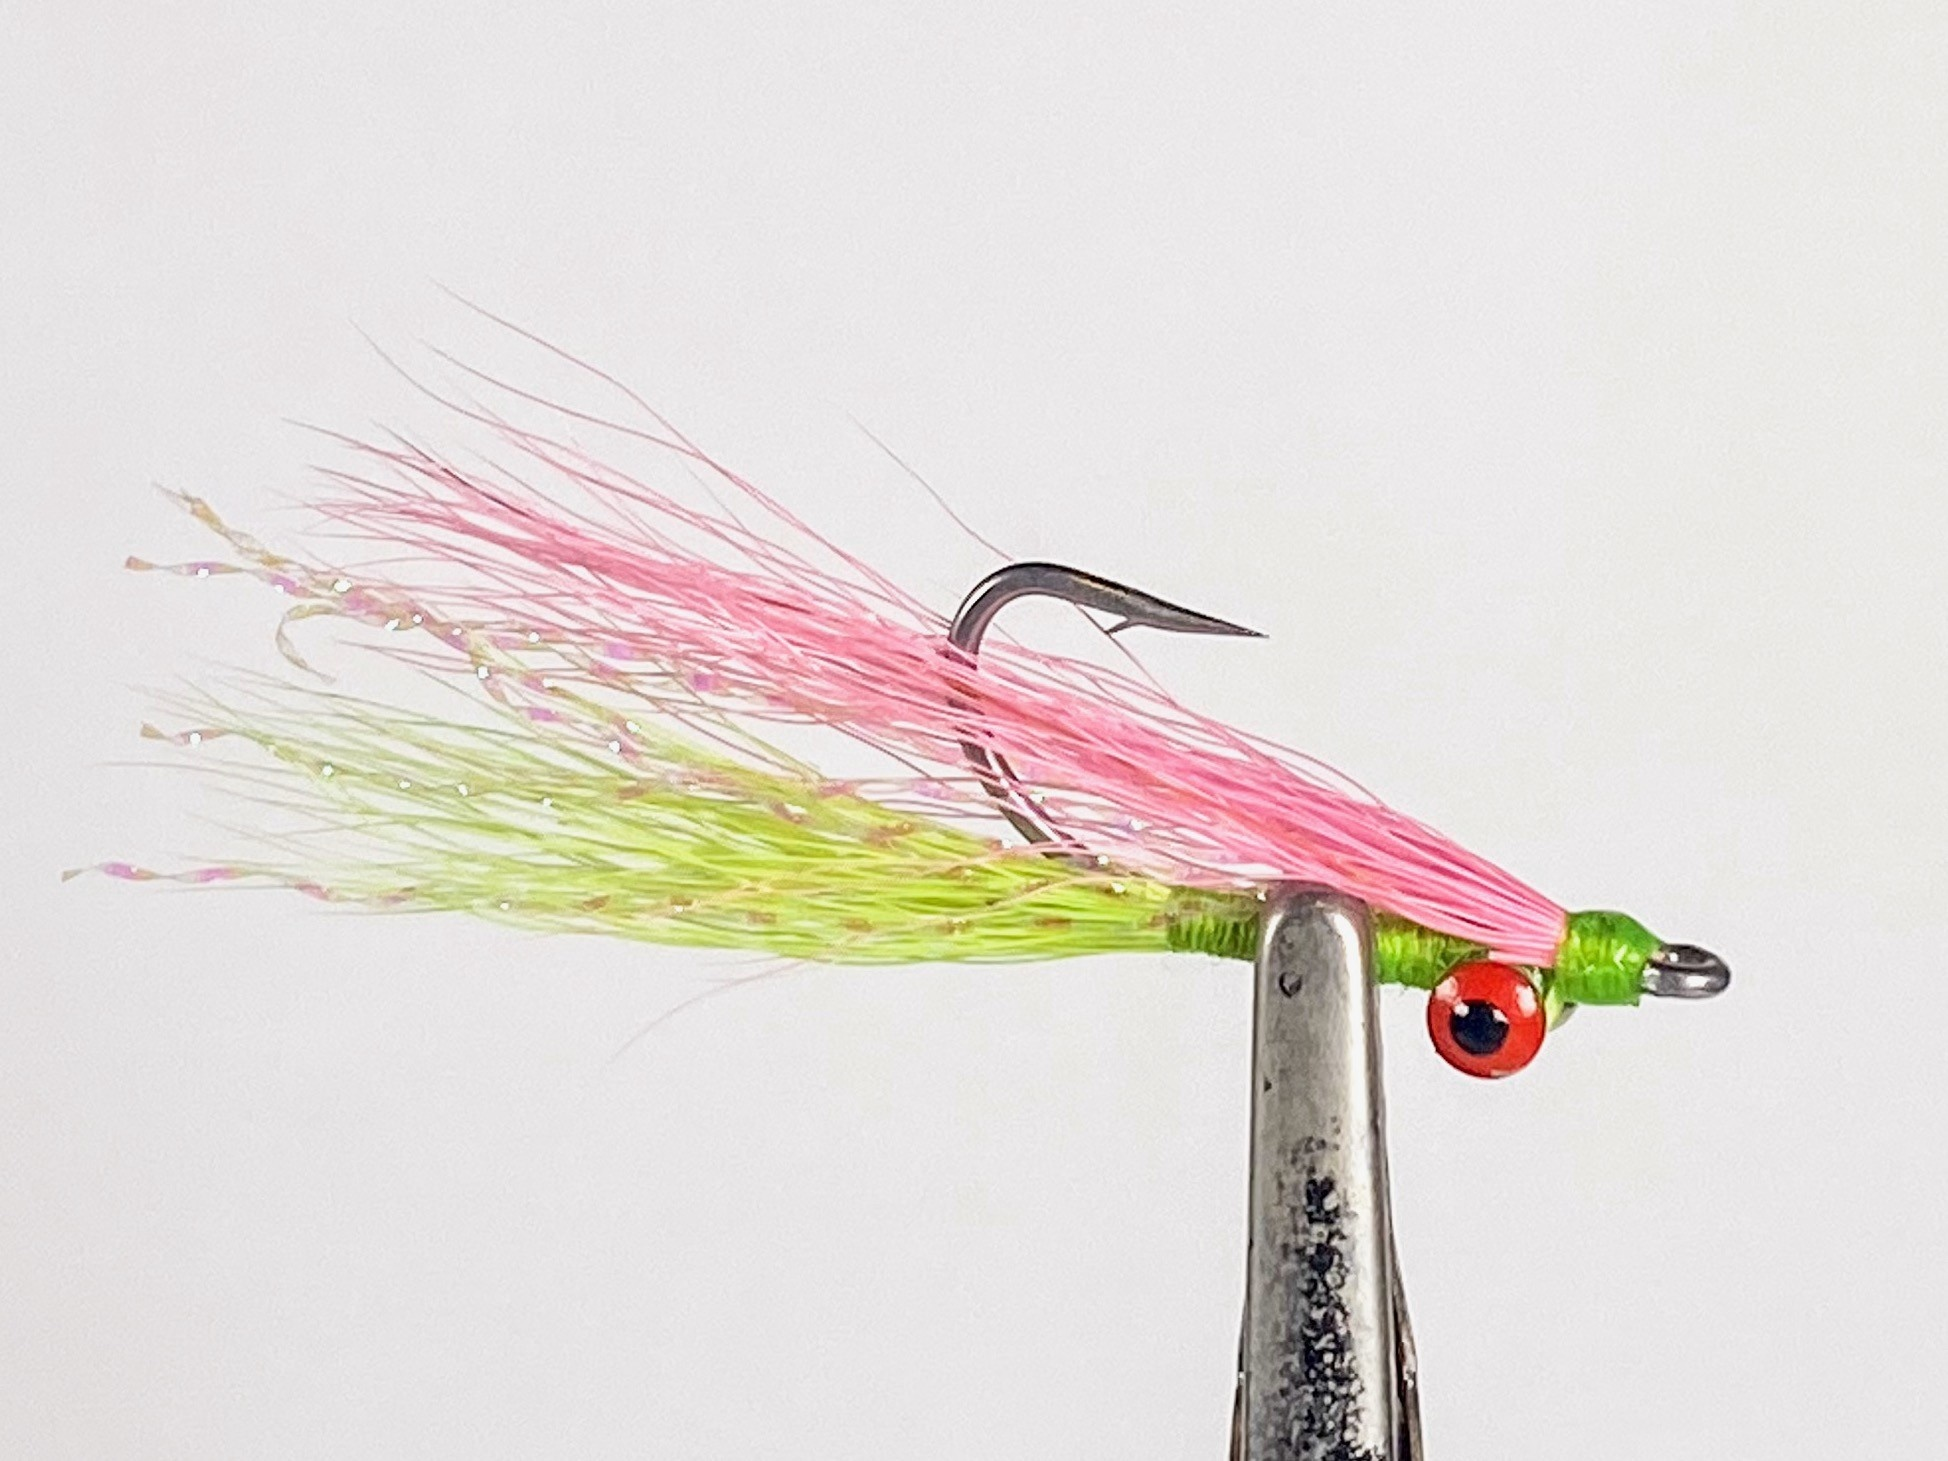 Rio Products Clouser Minnow